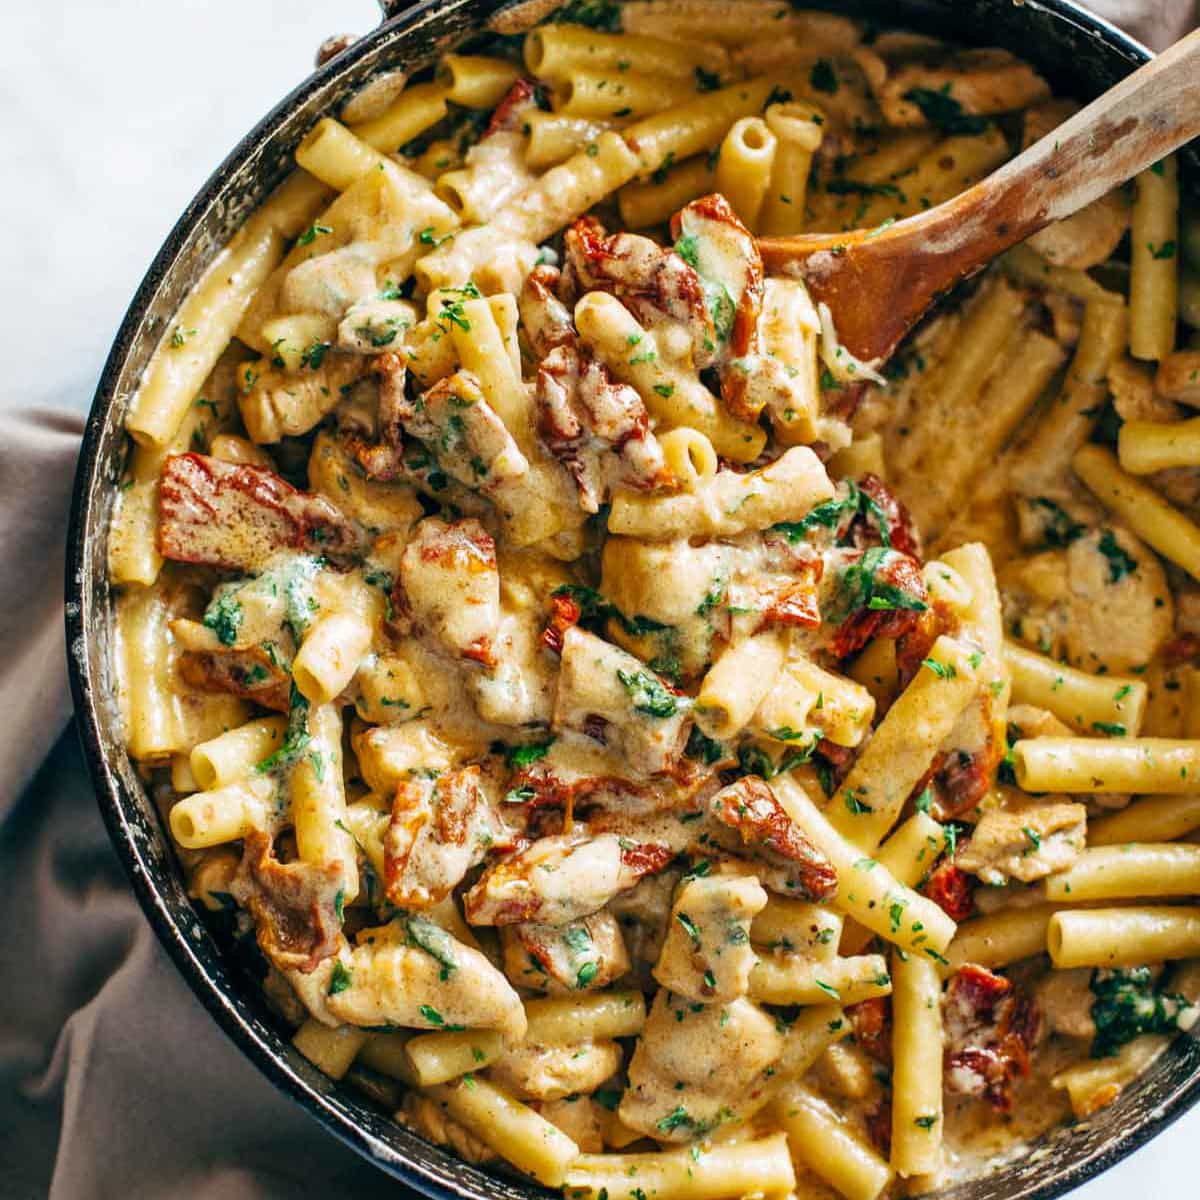 Sun dried tomato chicken pasta with spinach recipe